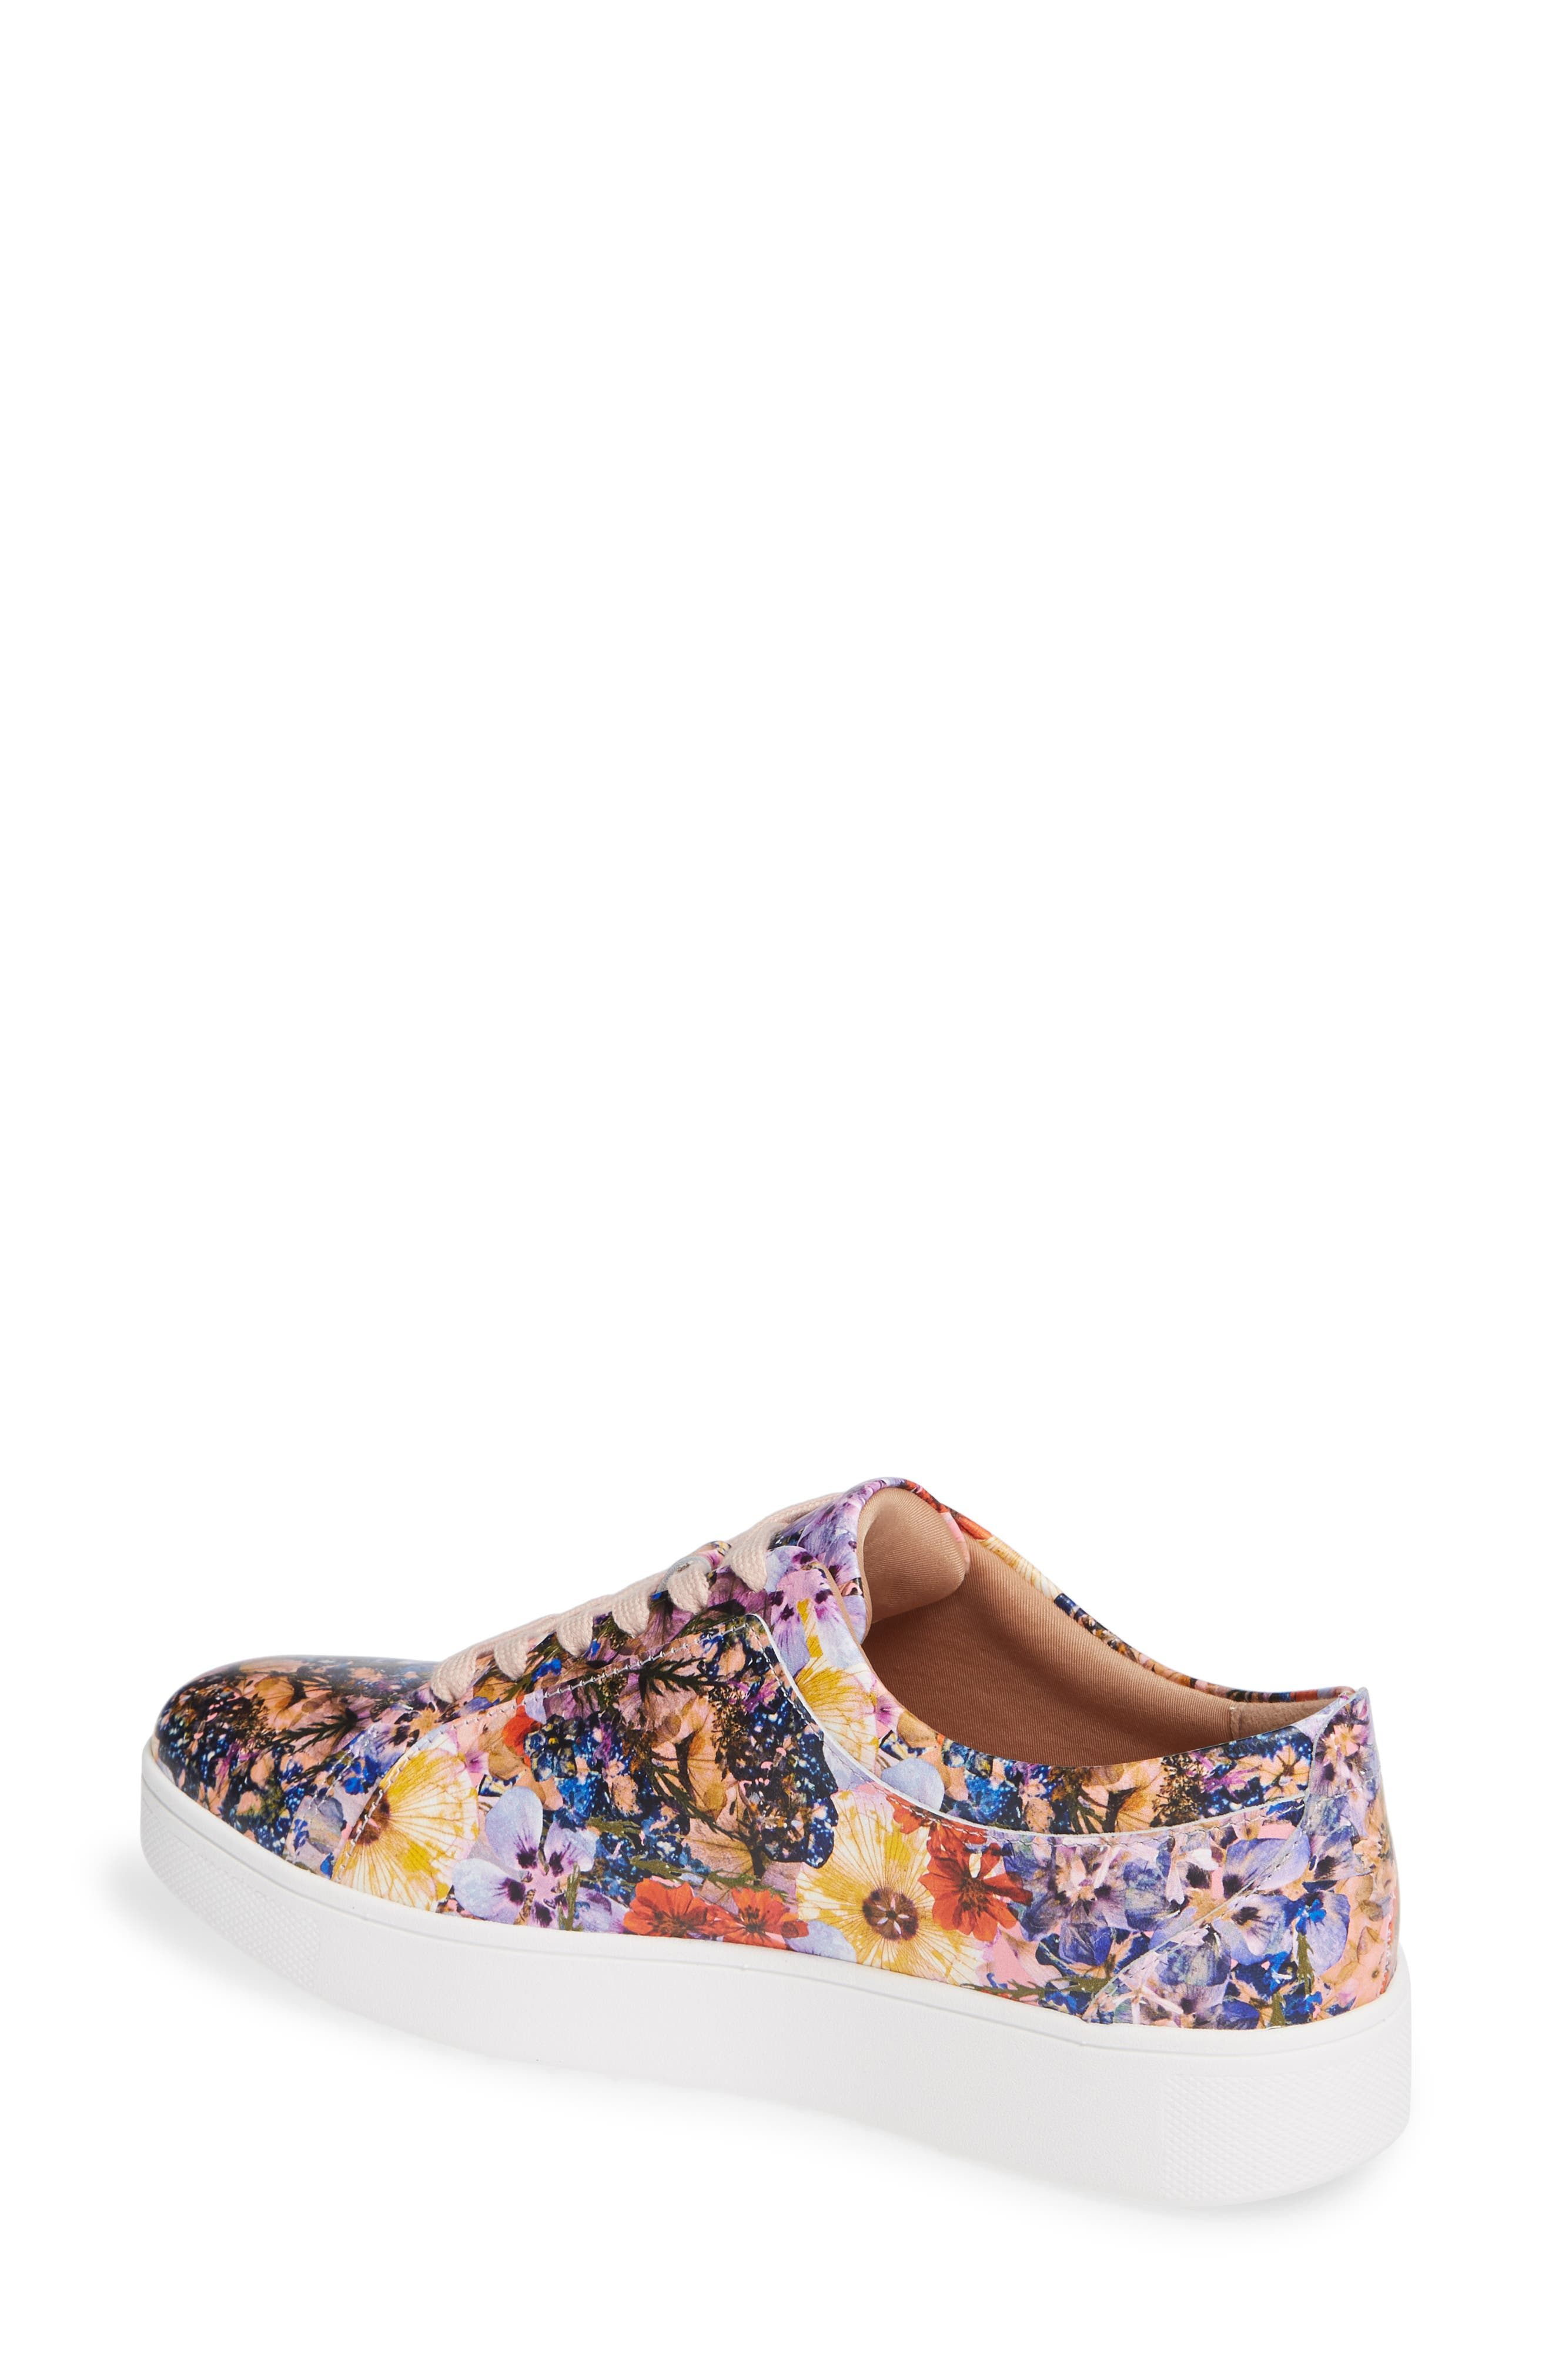 FITFLOP, Rally Flower Crush Leather Sneaker, Alternate thumbnail 2, color, OYSTER PINK FLOWER